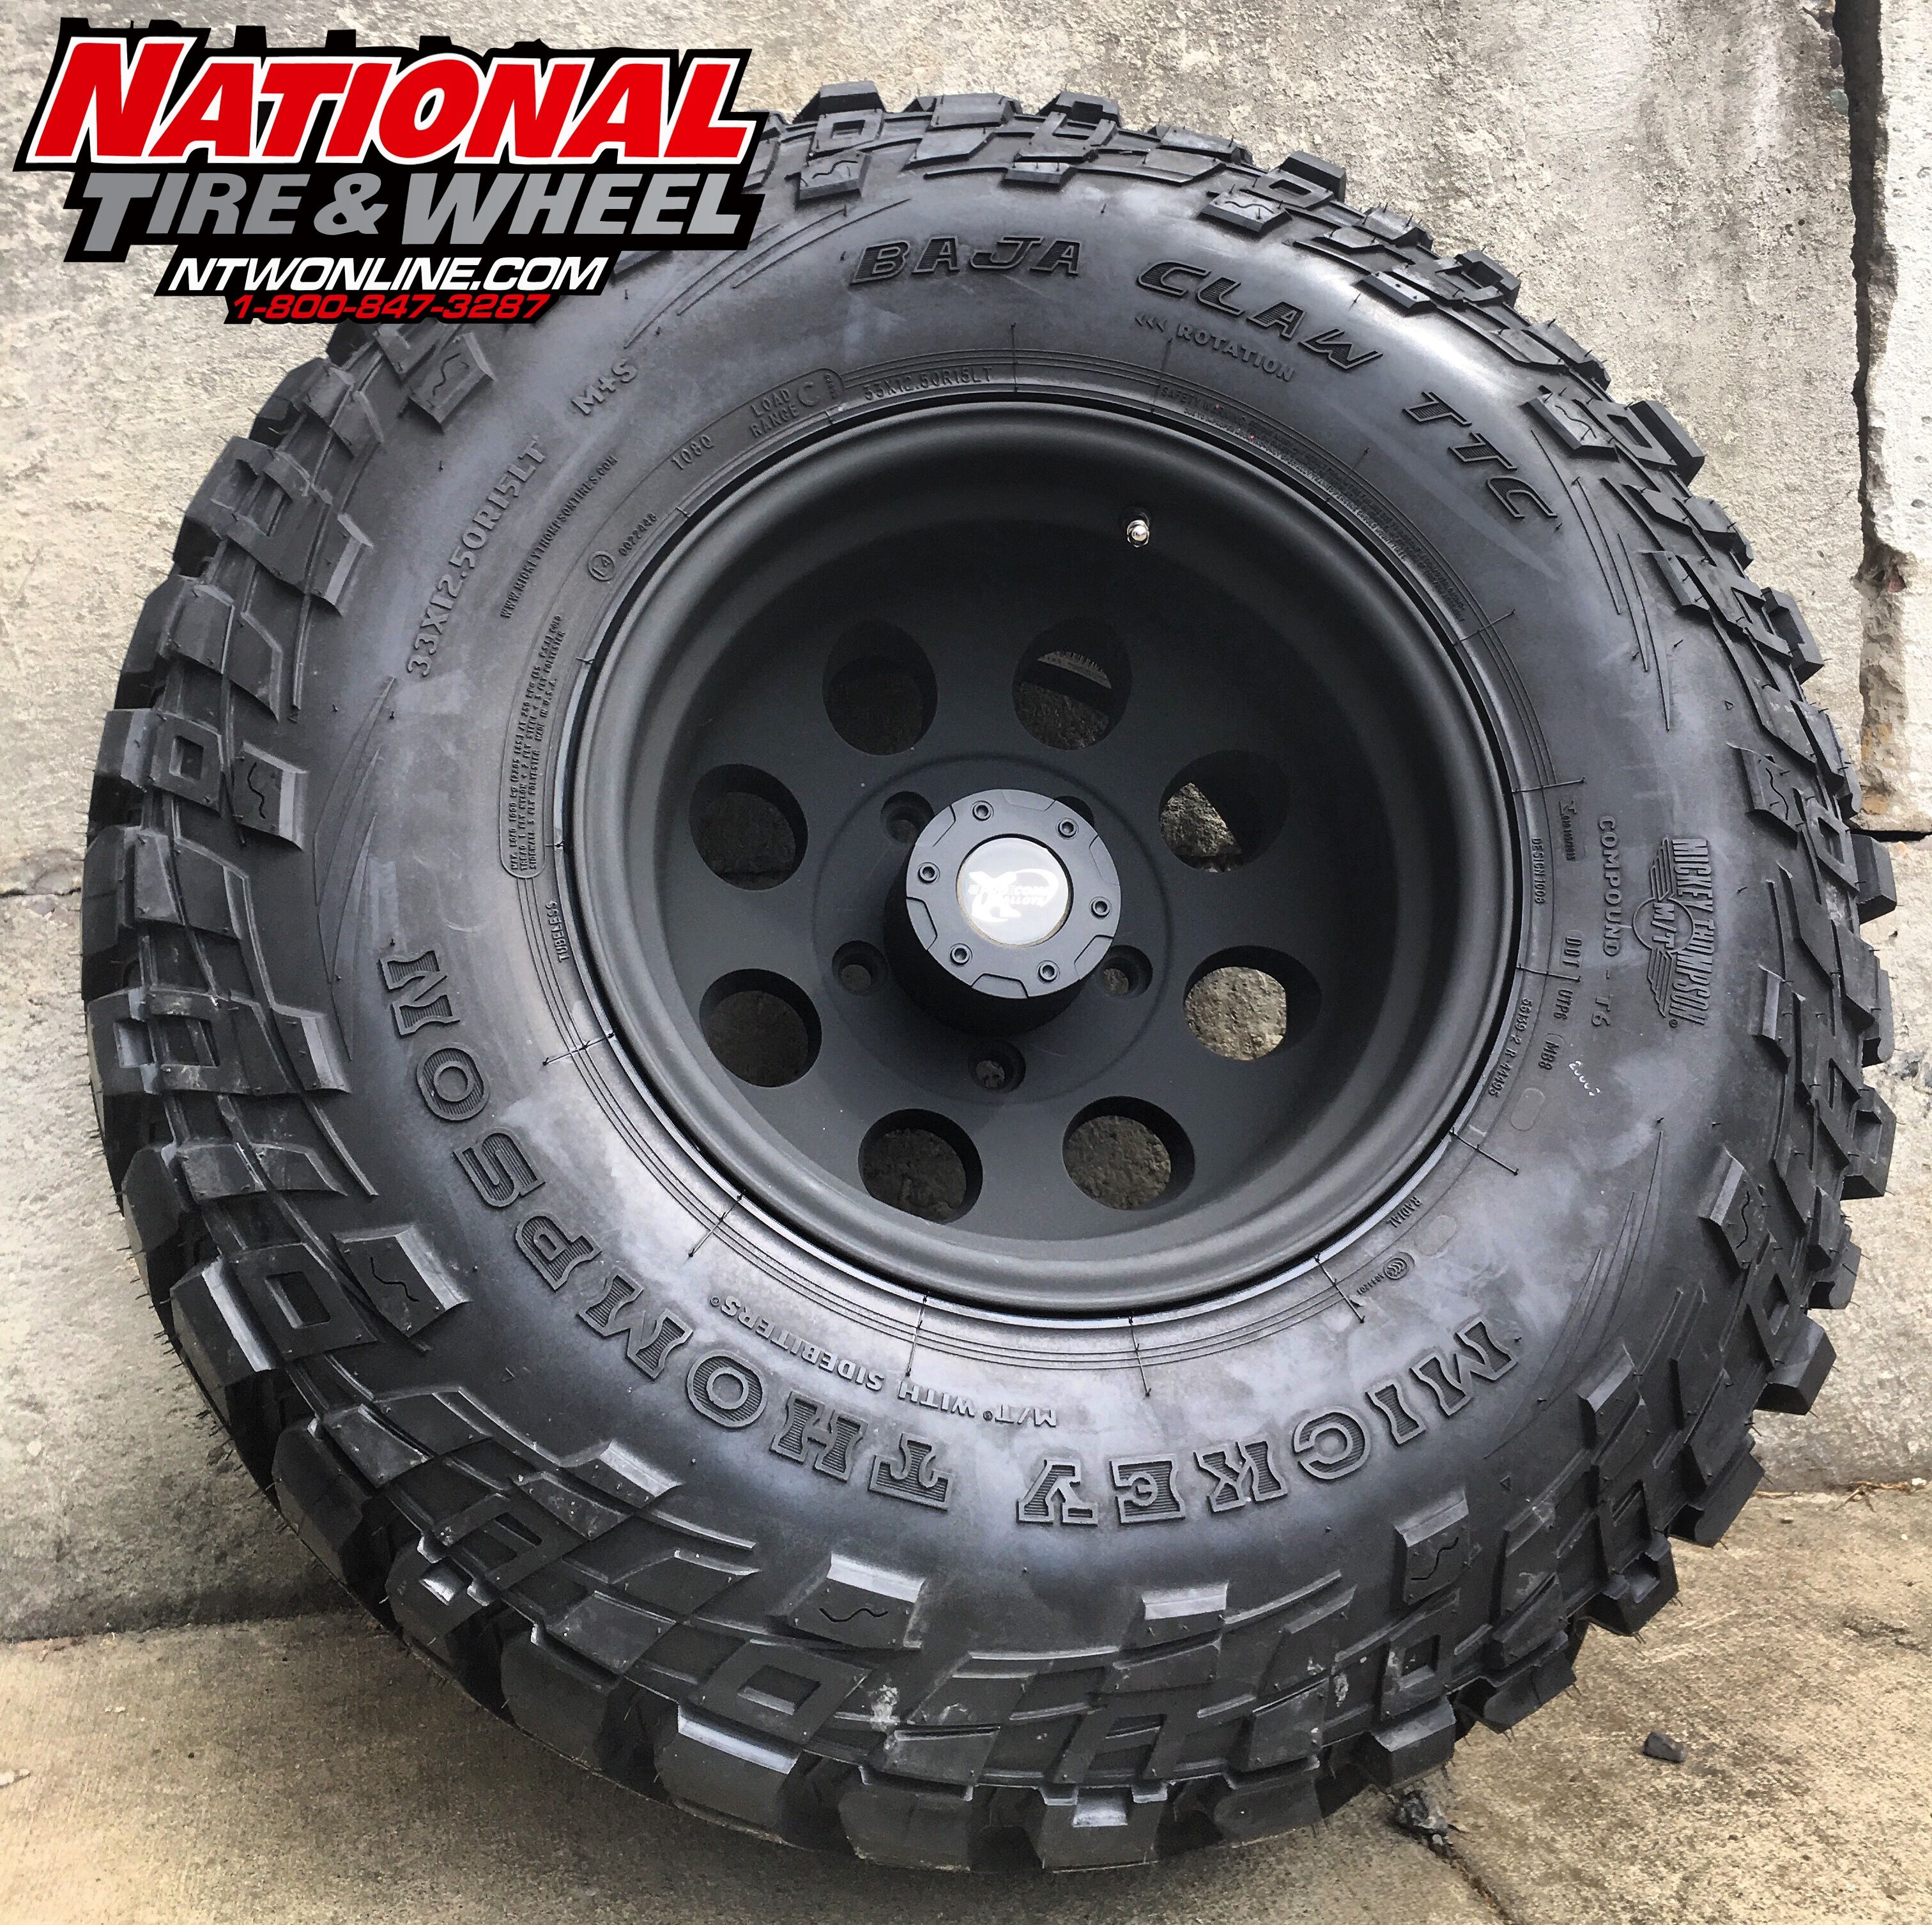 15x10 Pro Comp Wheel Type 7069 Mounted Up To A 33x12 50r15 Mickey Thompson Baja Claw Ttc With Sidebiters